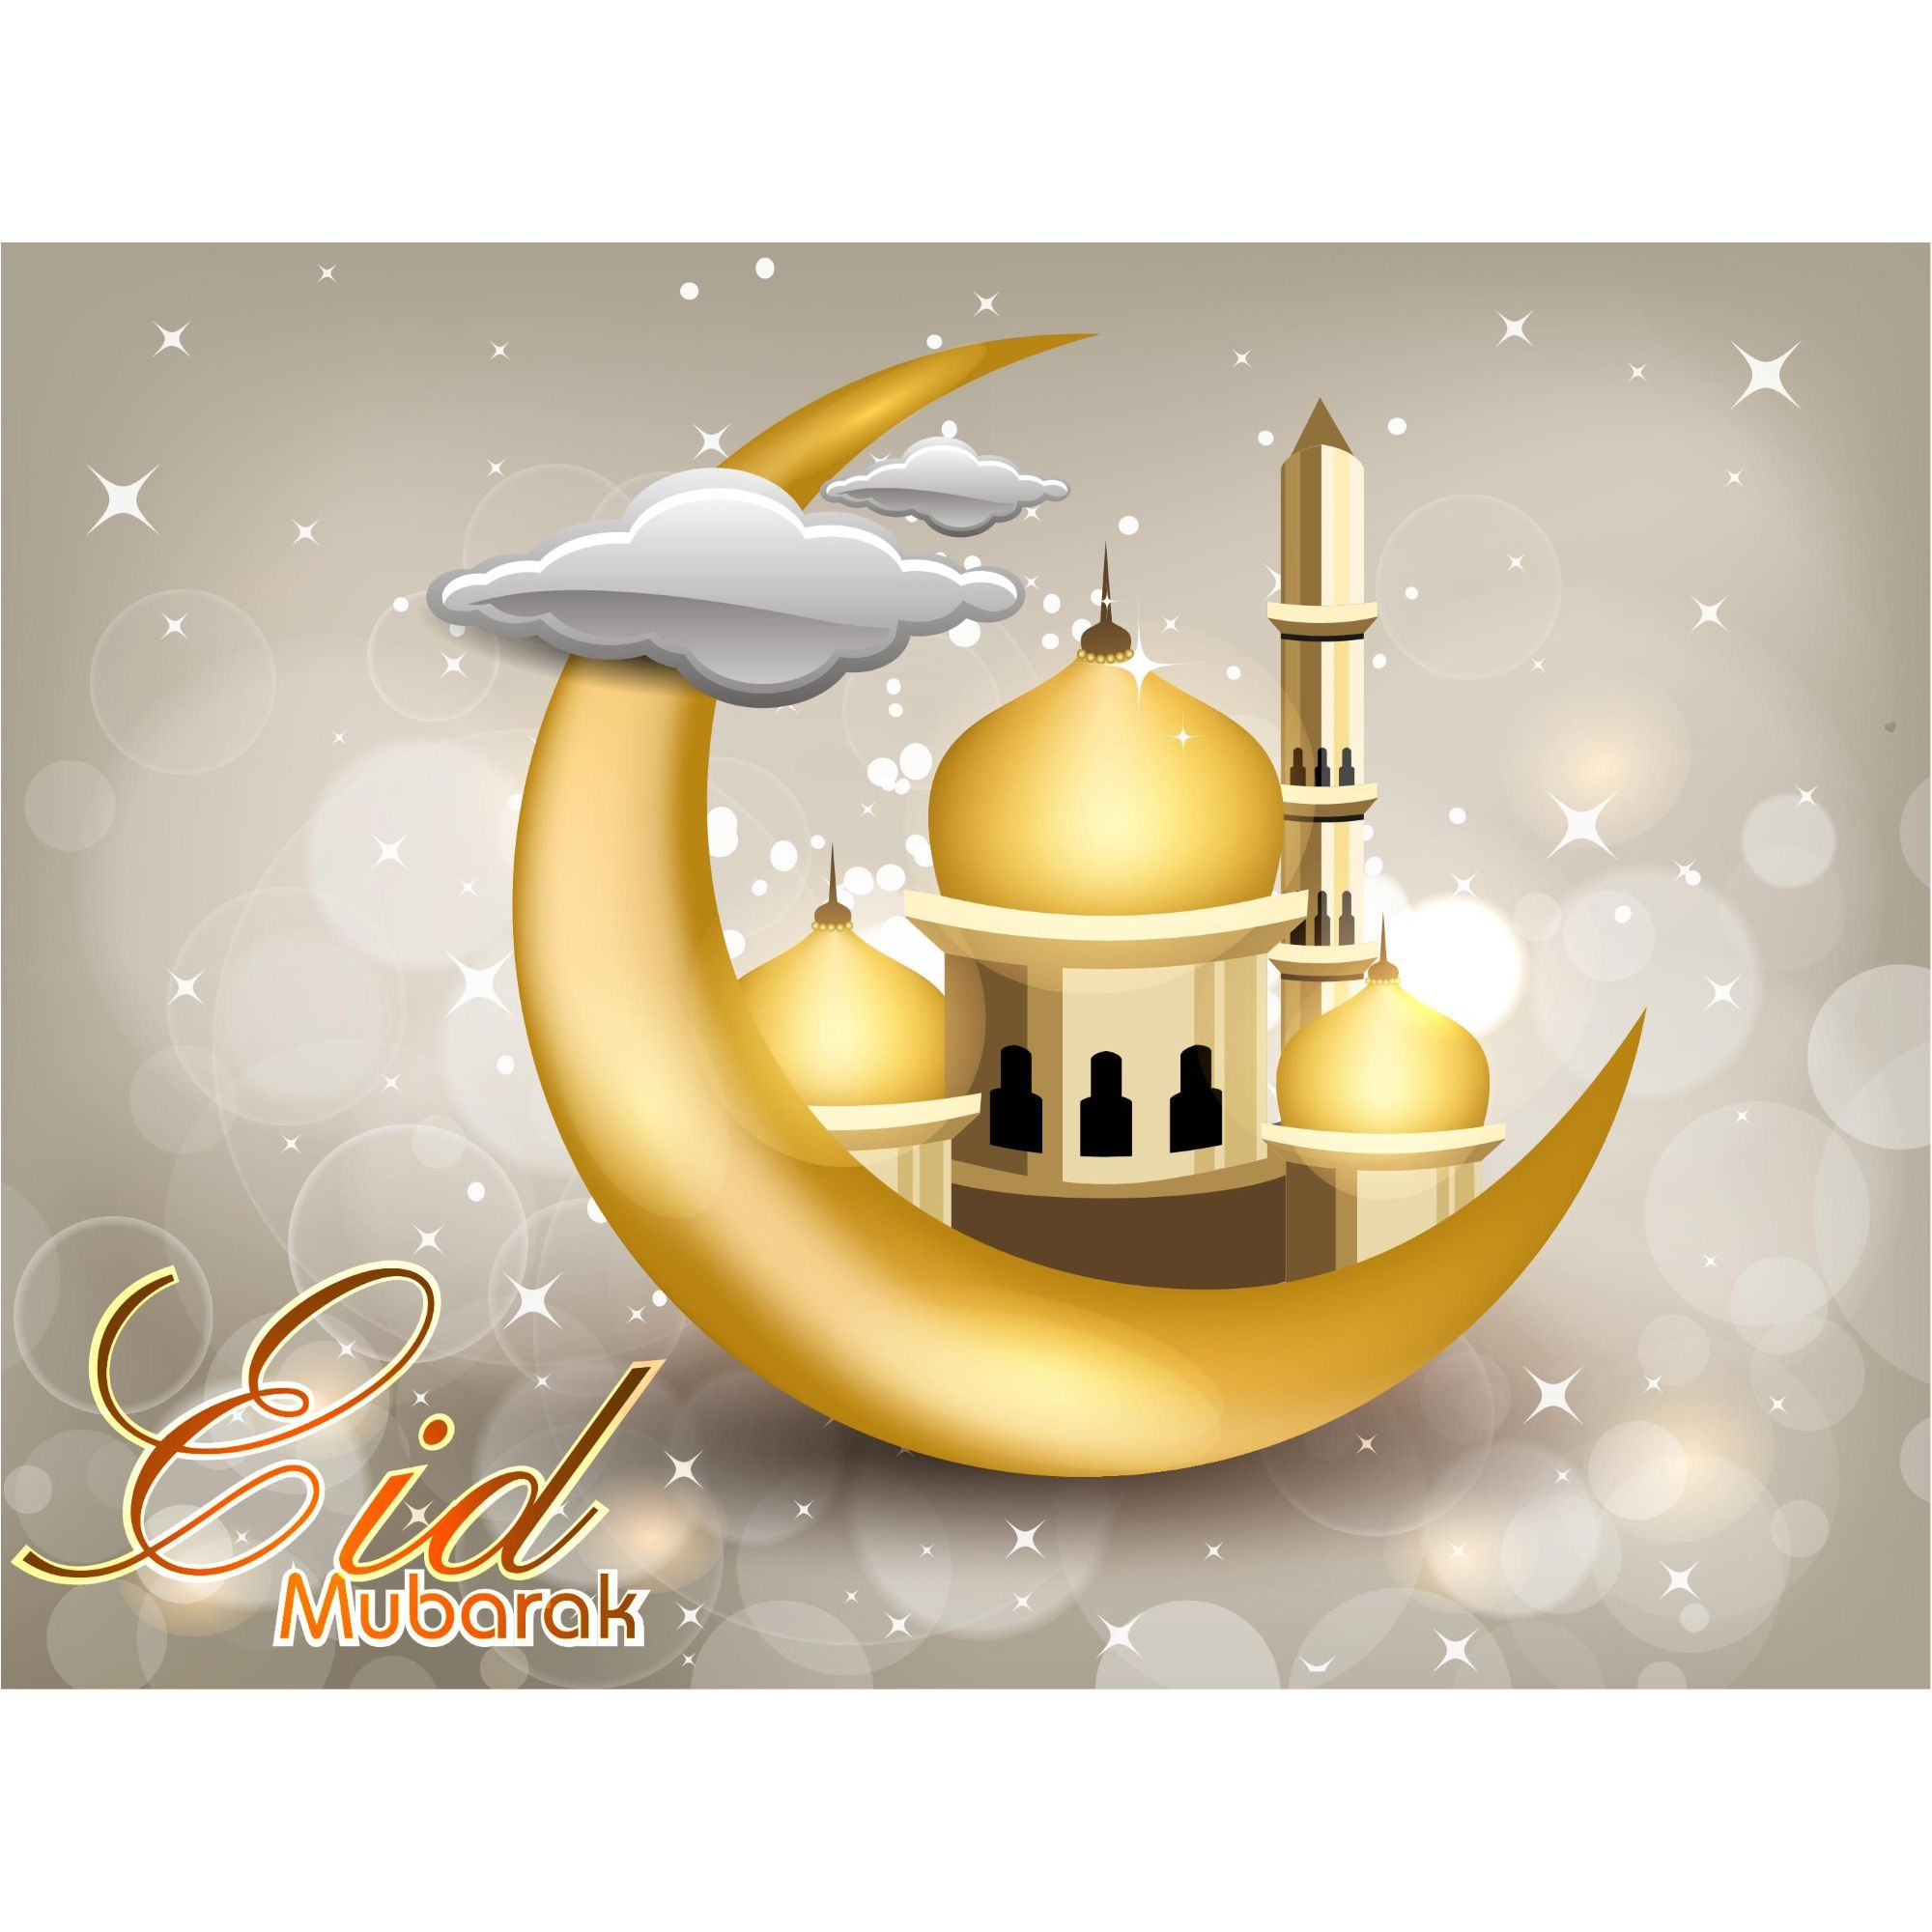 Eid Mubarak Golden Greeting Card Design Vector With Images Eid